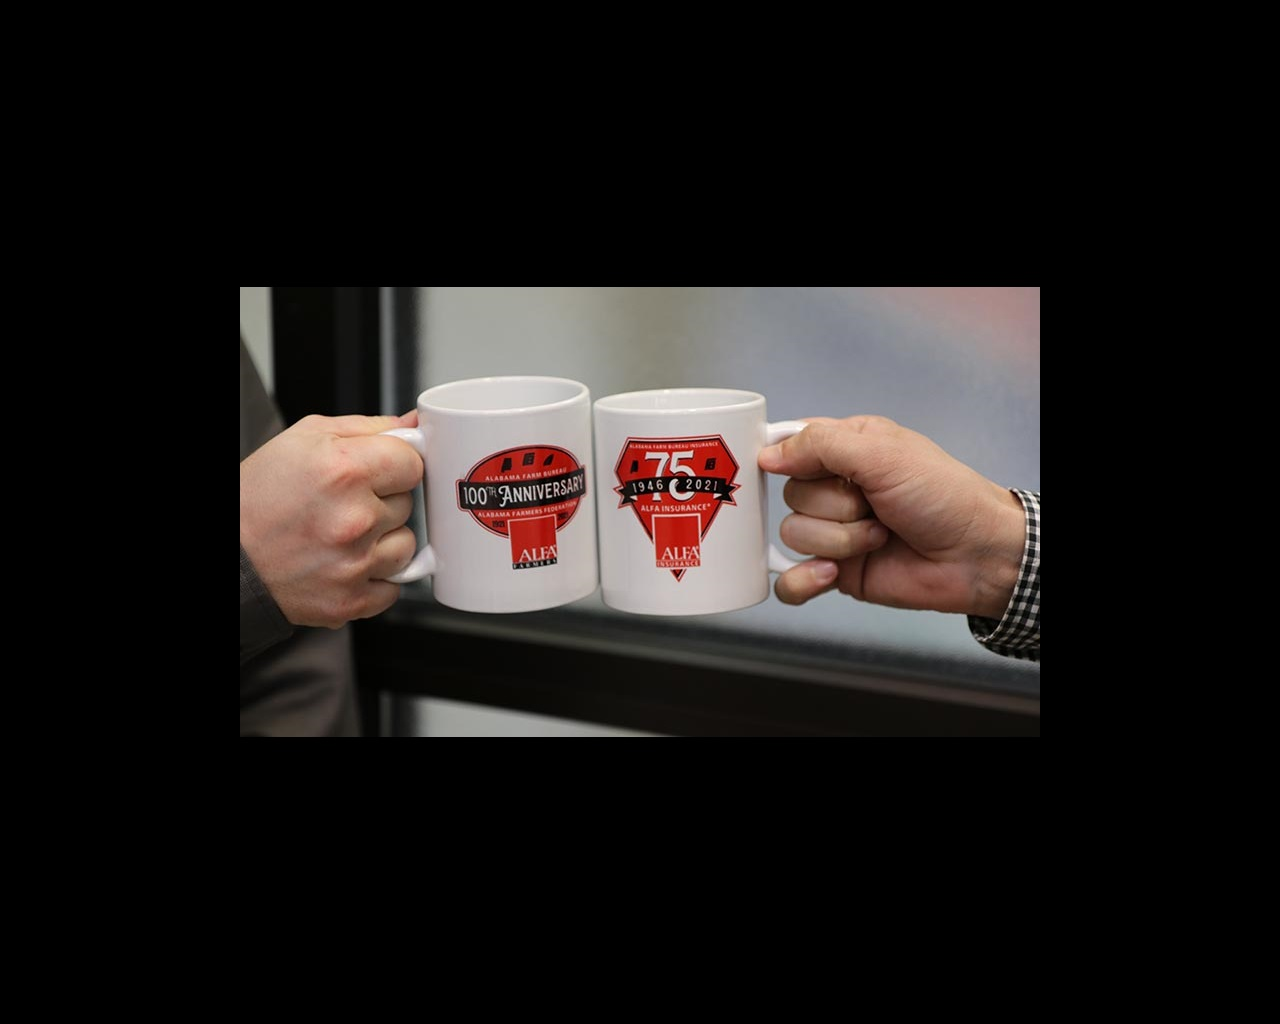 Two hands holding coffee mugs